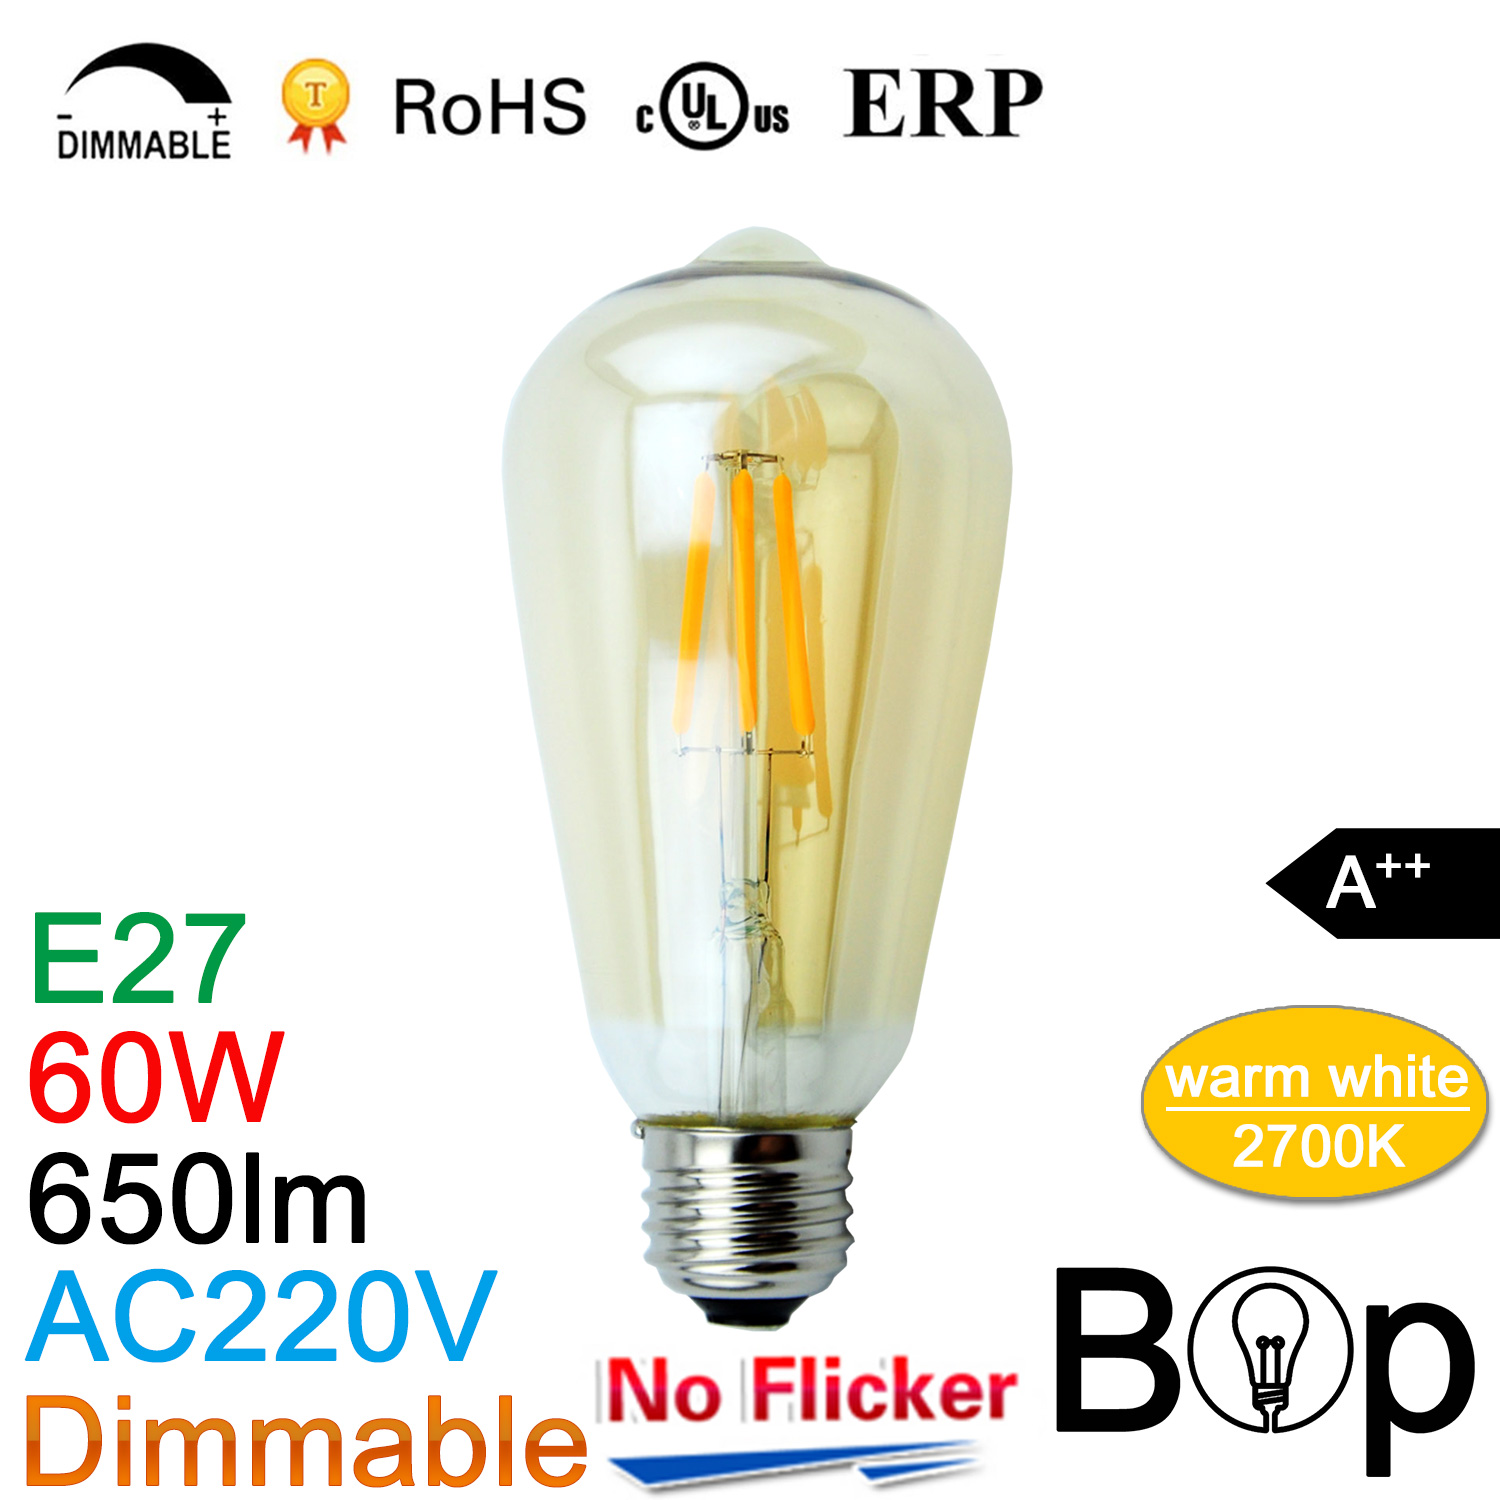 Hot sale amber ST64 BOP LED Bulb Filament Light Glass ball Lamp night lighting 60w Incandescent lamps AC220V in stock(China (Mainland))